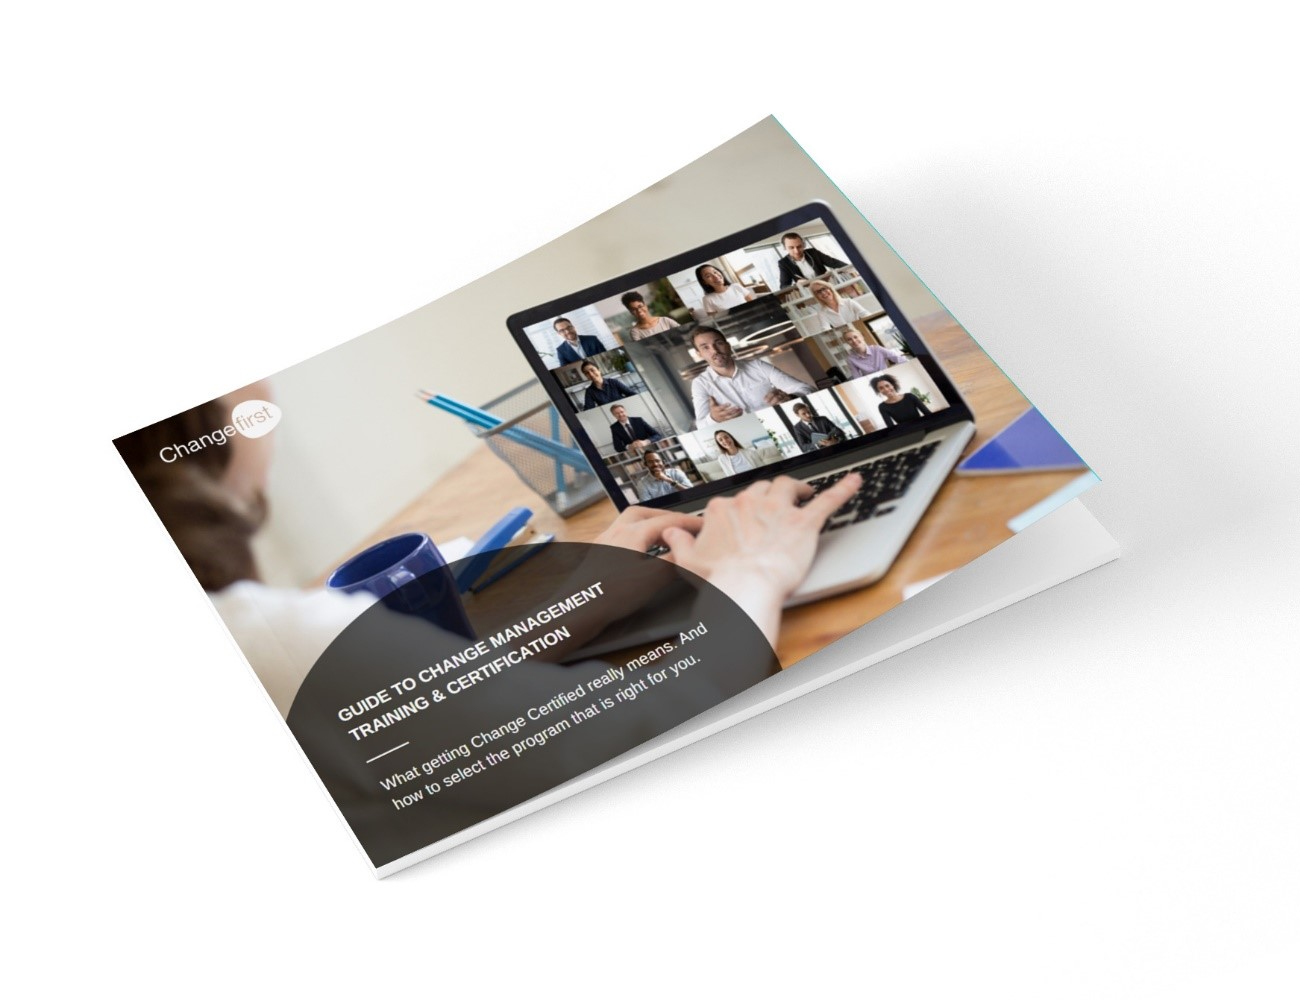 (eBook) Download our comprehensive guide to Change Management Training & Certification